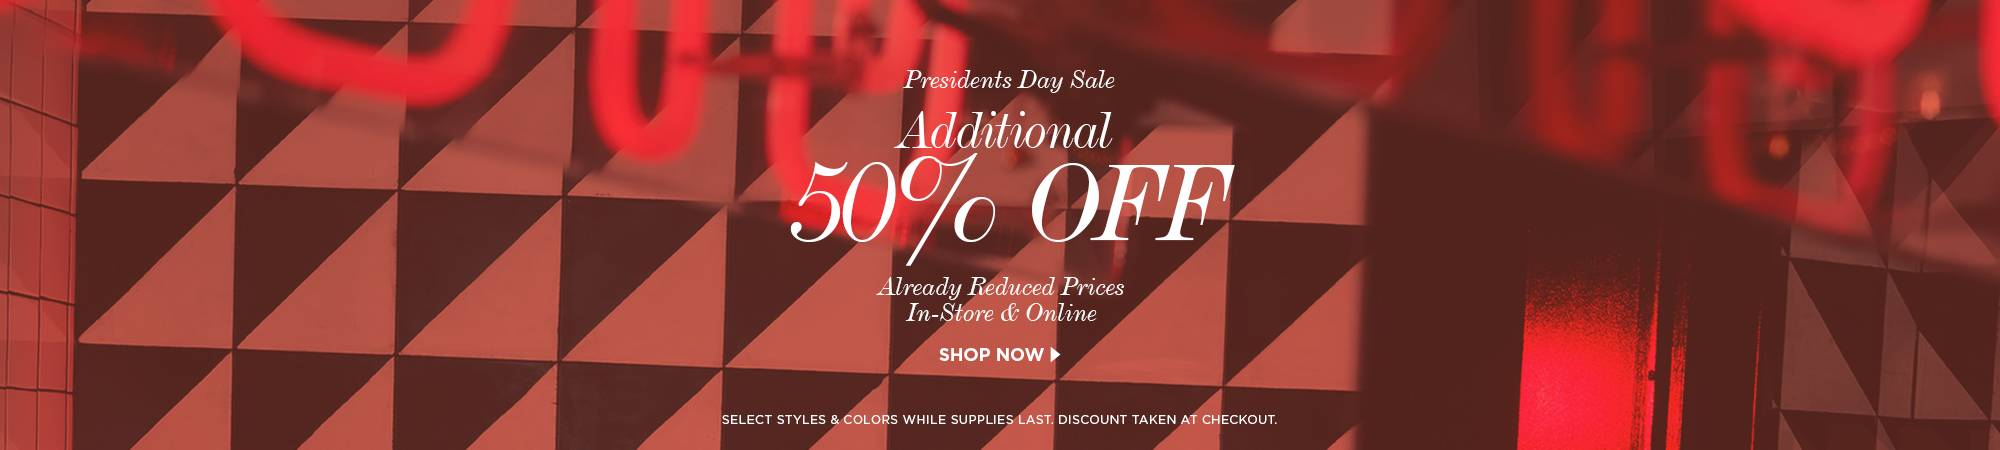 presidents day sale. additional 50% off.